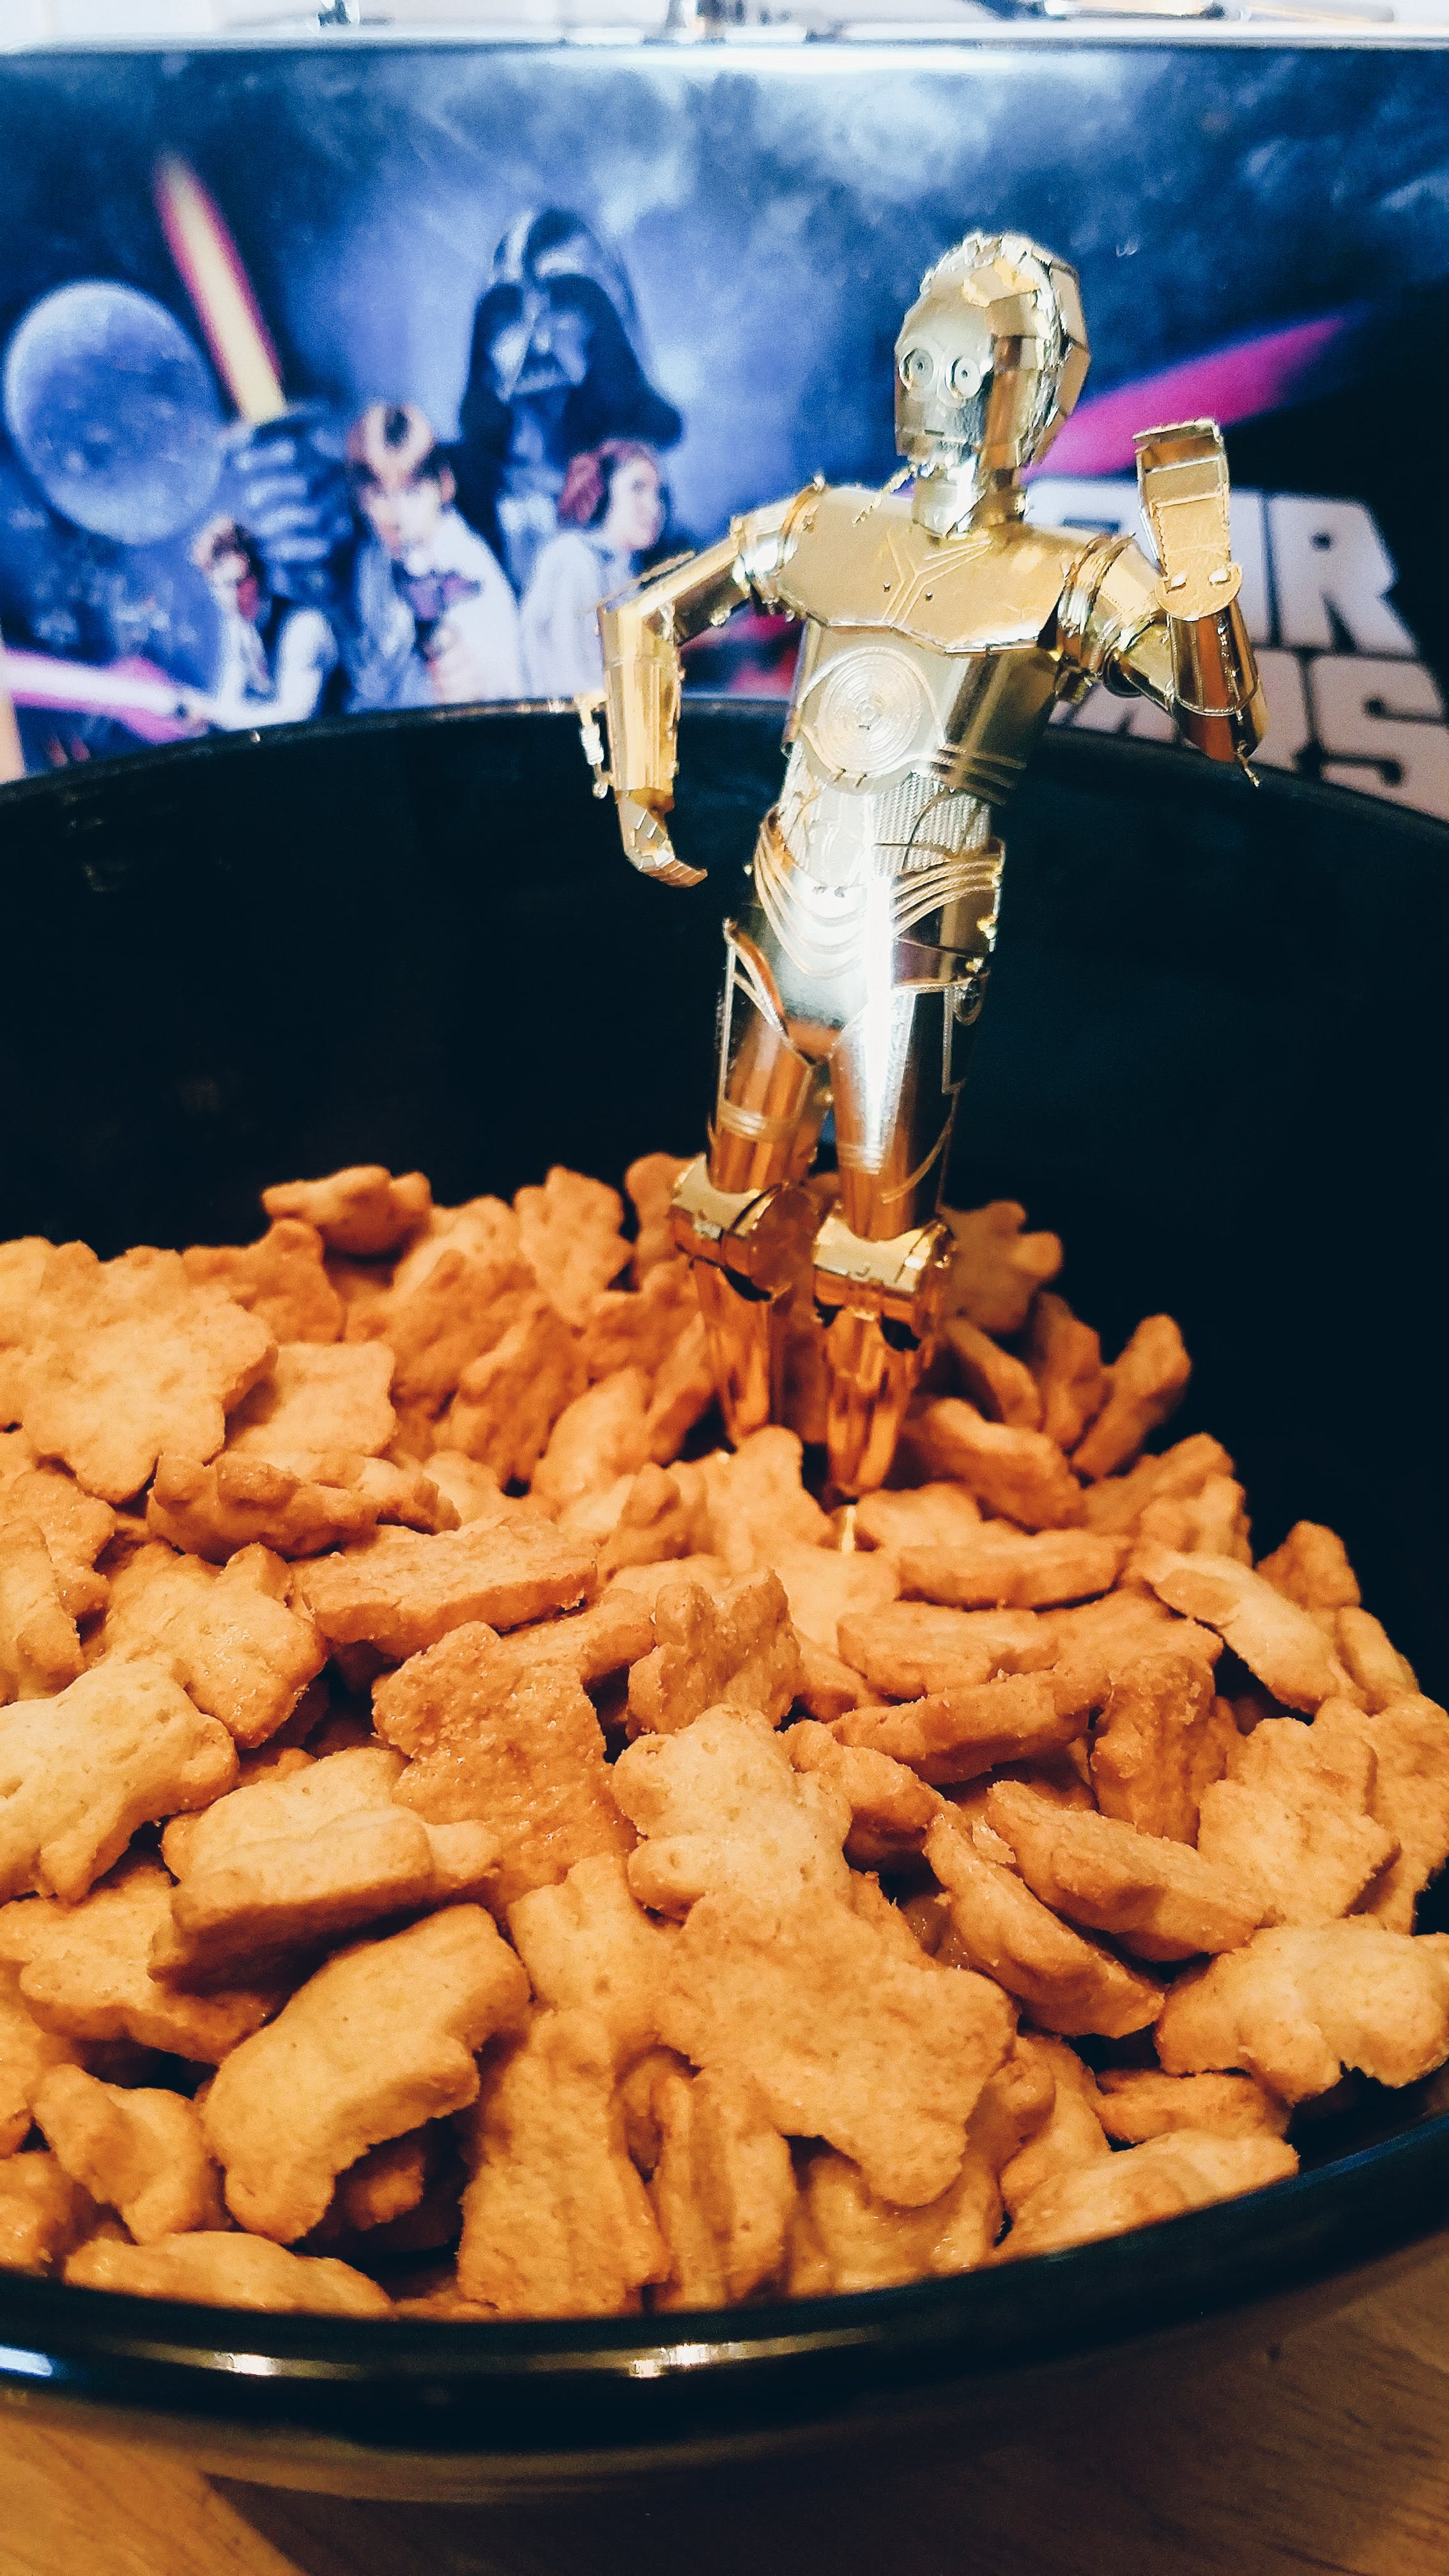 Metal model of C-3PO in a bowl of teddy graham crackers so it looks like 3PO and ewoks